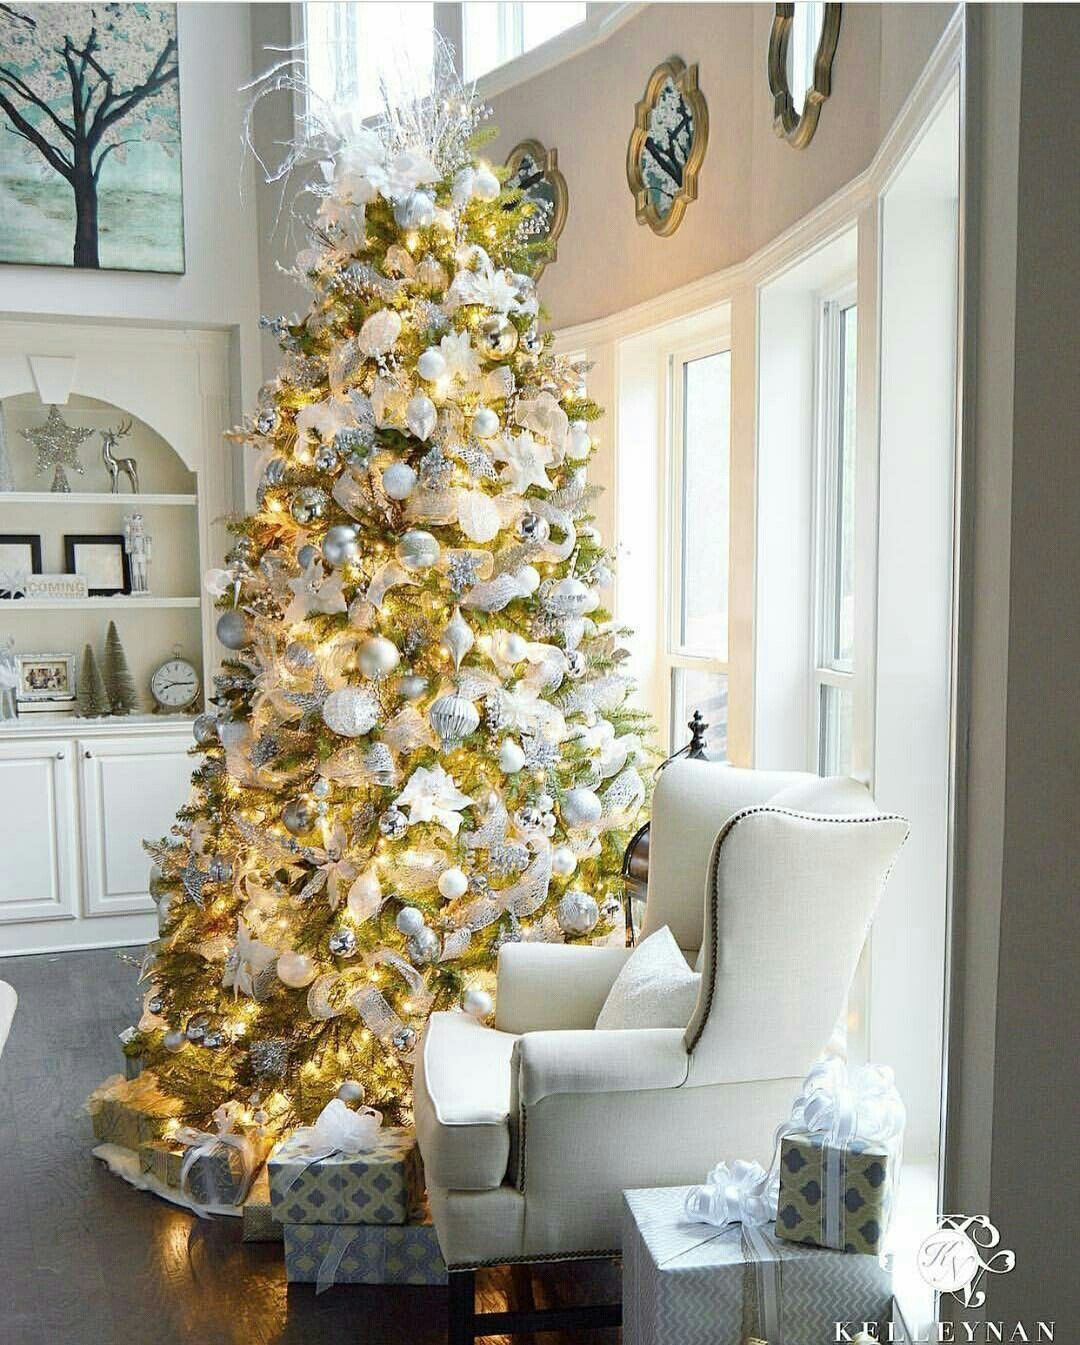 The Real Houses Of Ig Arvore De Natal Gold Holiday Decor Gold Christmas Decorations Gold Christmas Tree